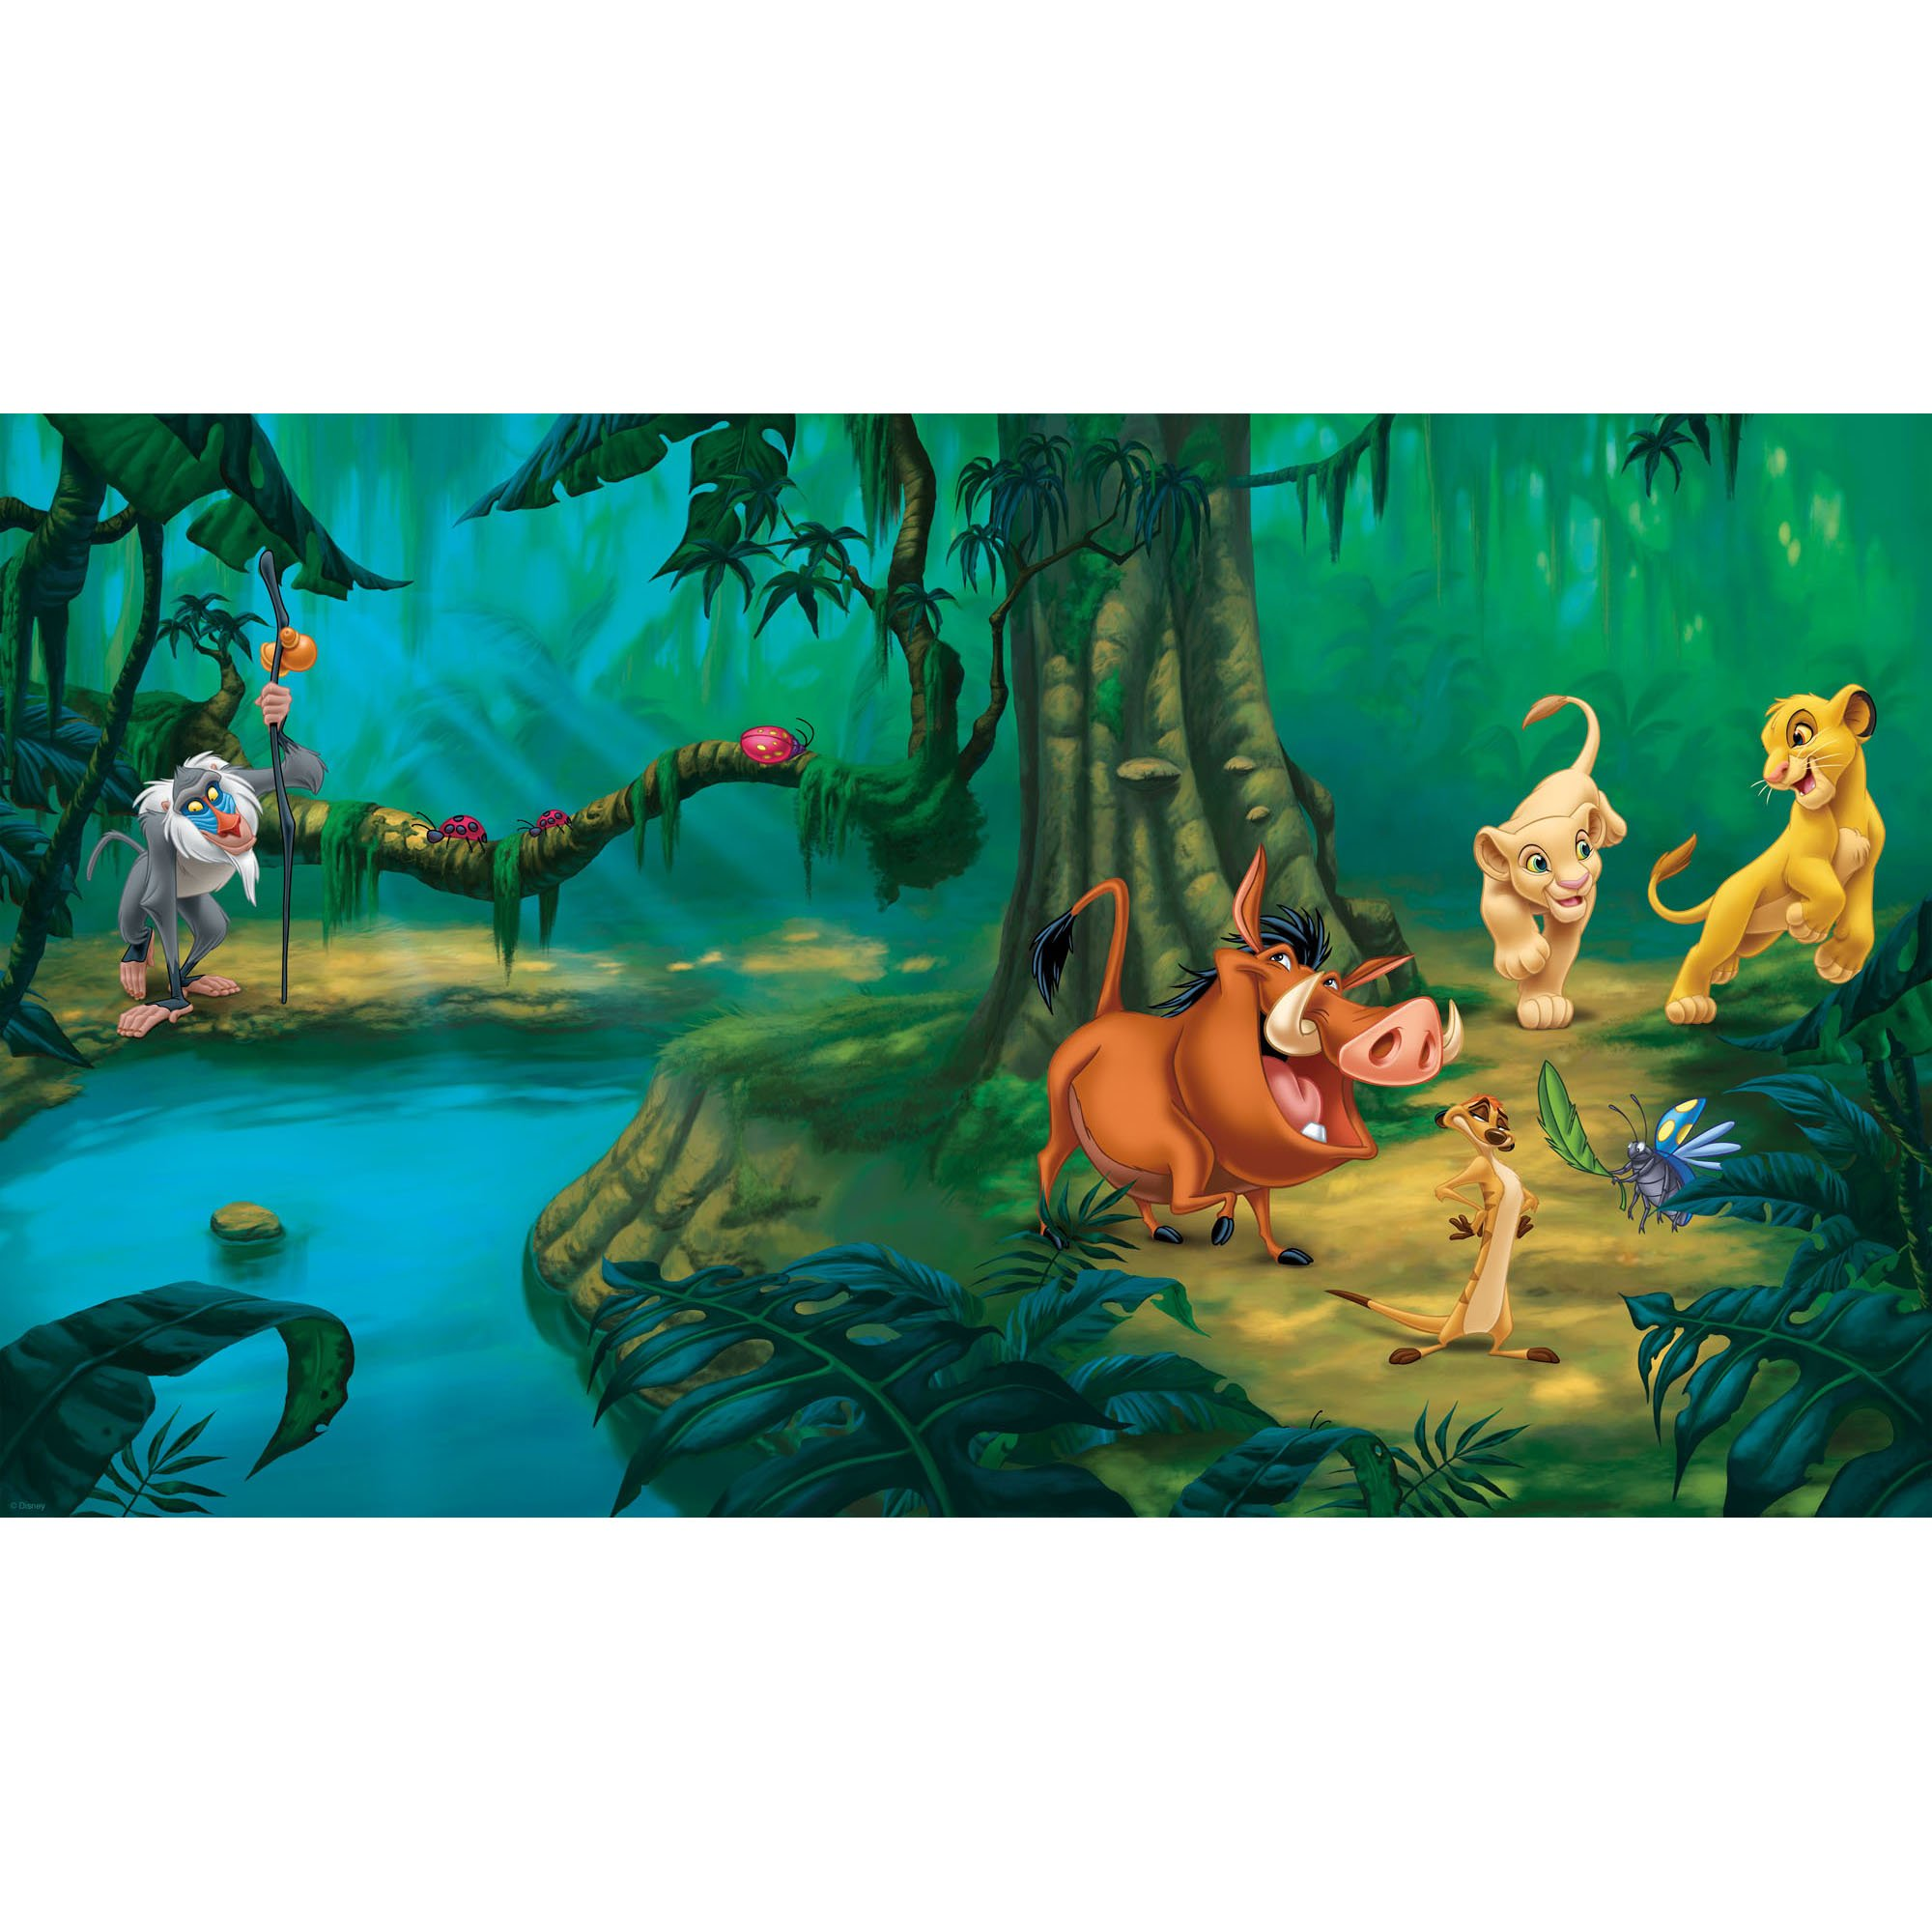 RoomMates Lion King Chair Rail Prepasted, Removable Wall Mural - 6' X 10.5' by RoomMates (Image #1)